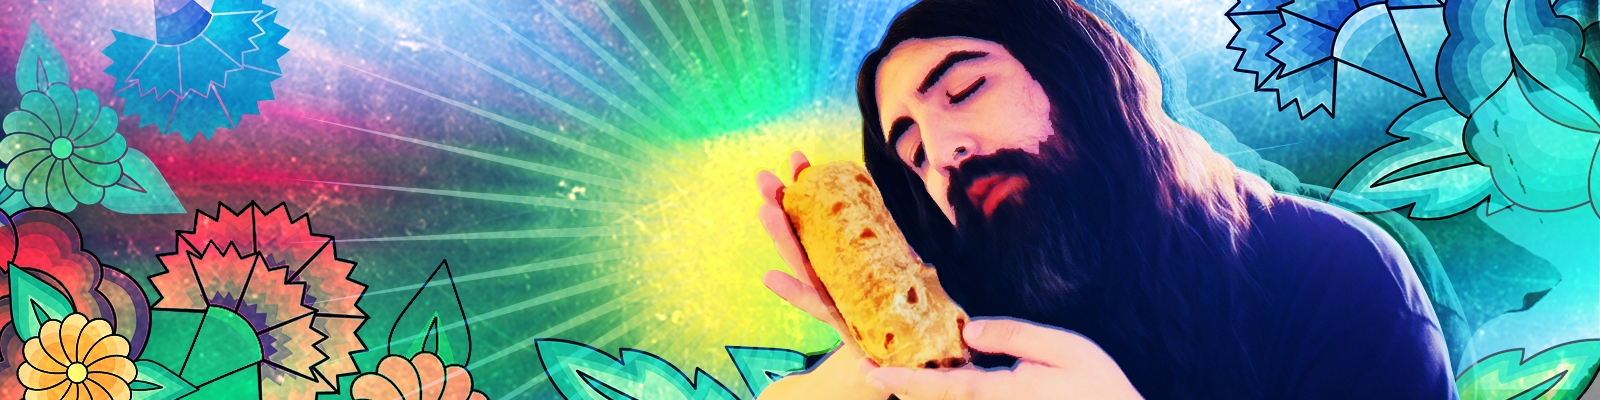 Exploring Mexican-American Identity Over Burritos With The Rapper Speak